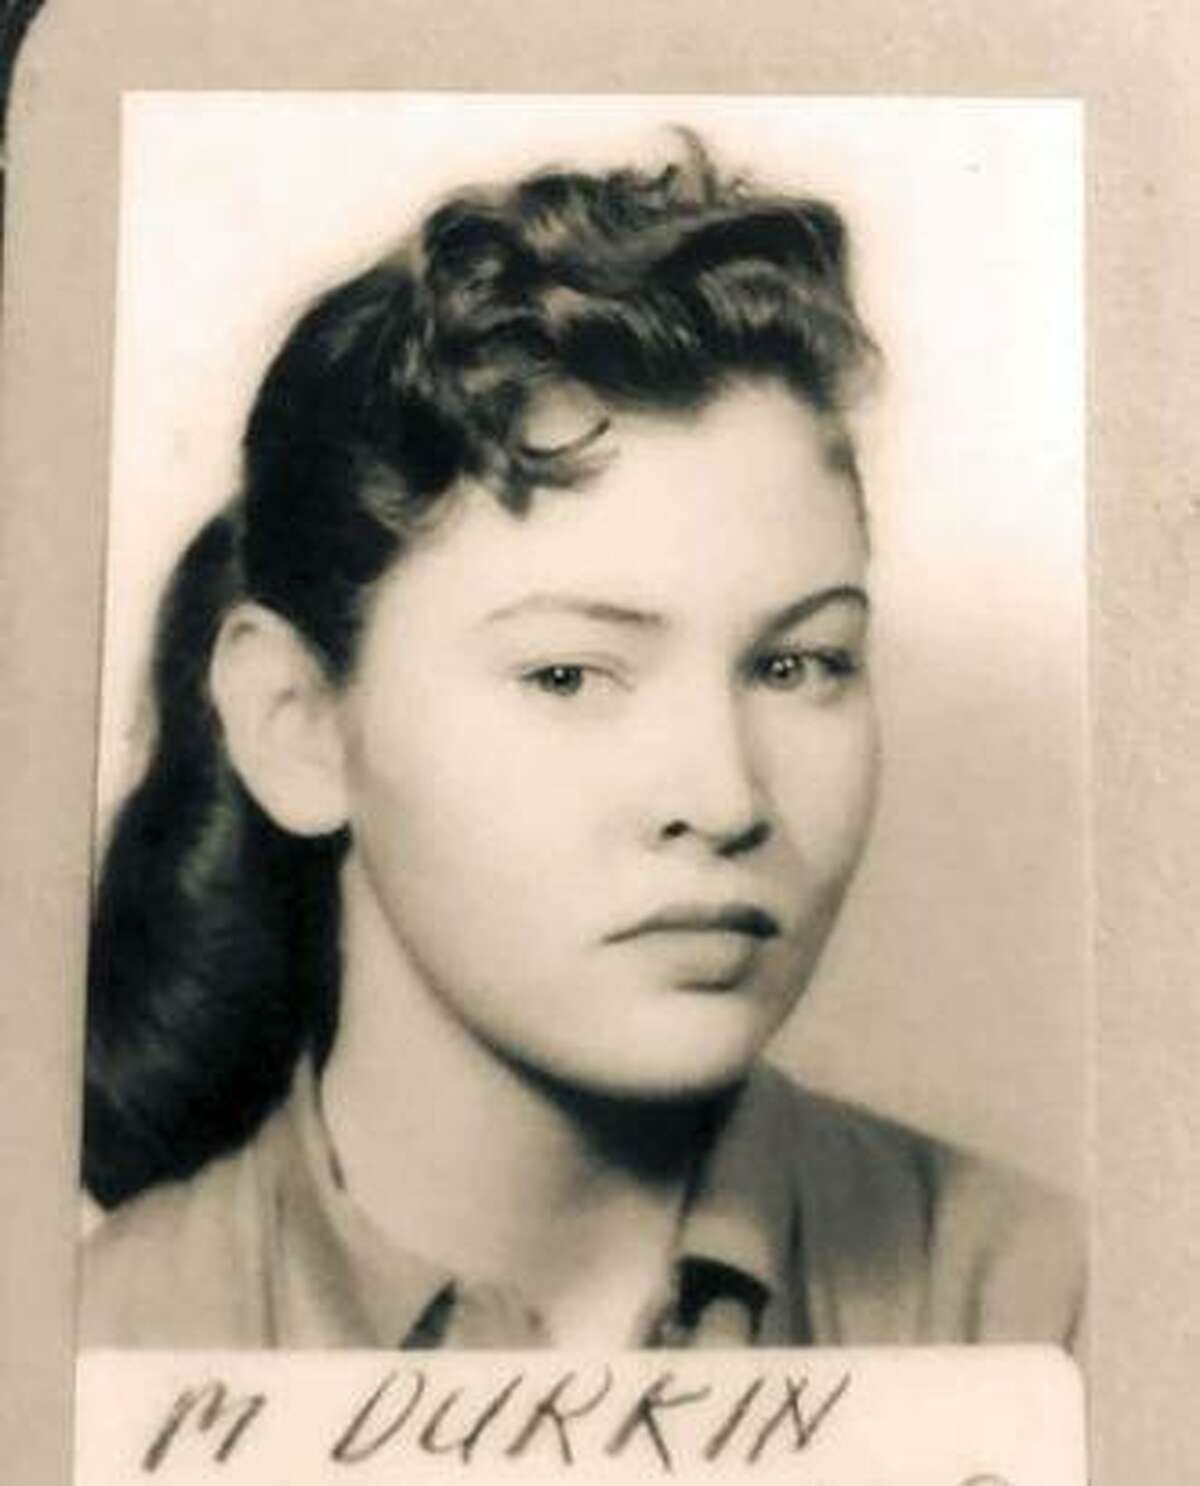 Mary Durkin as a younger woman.